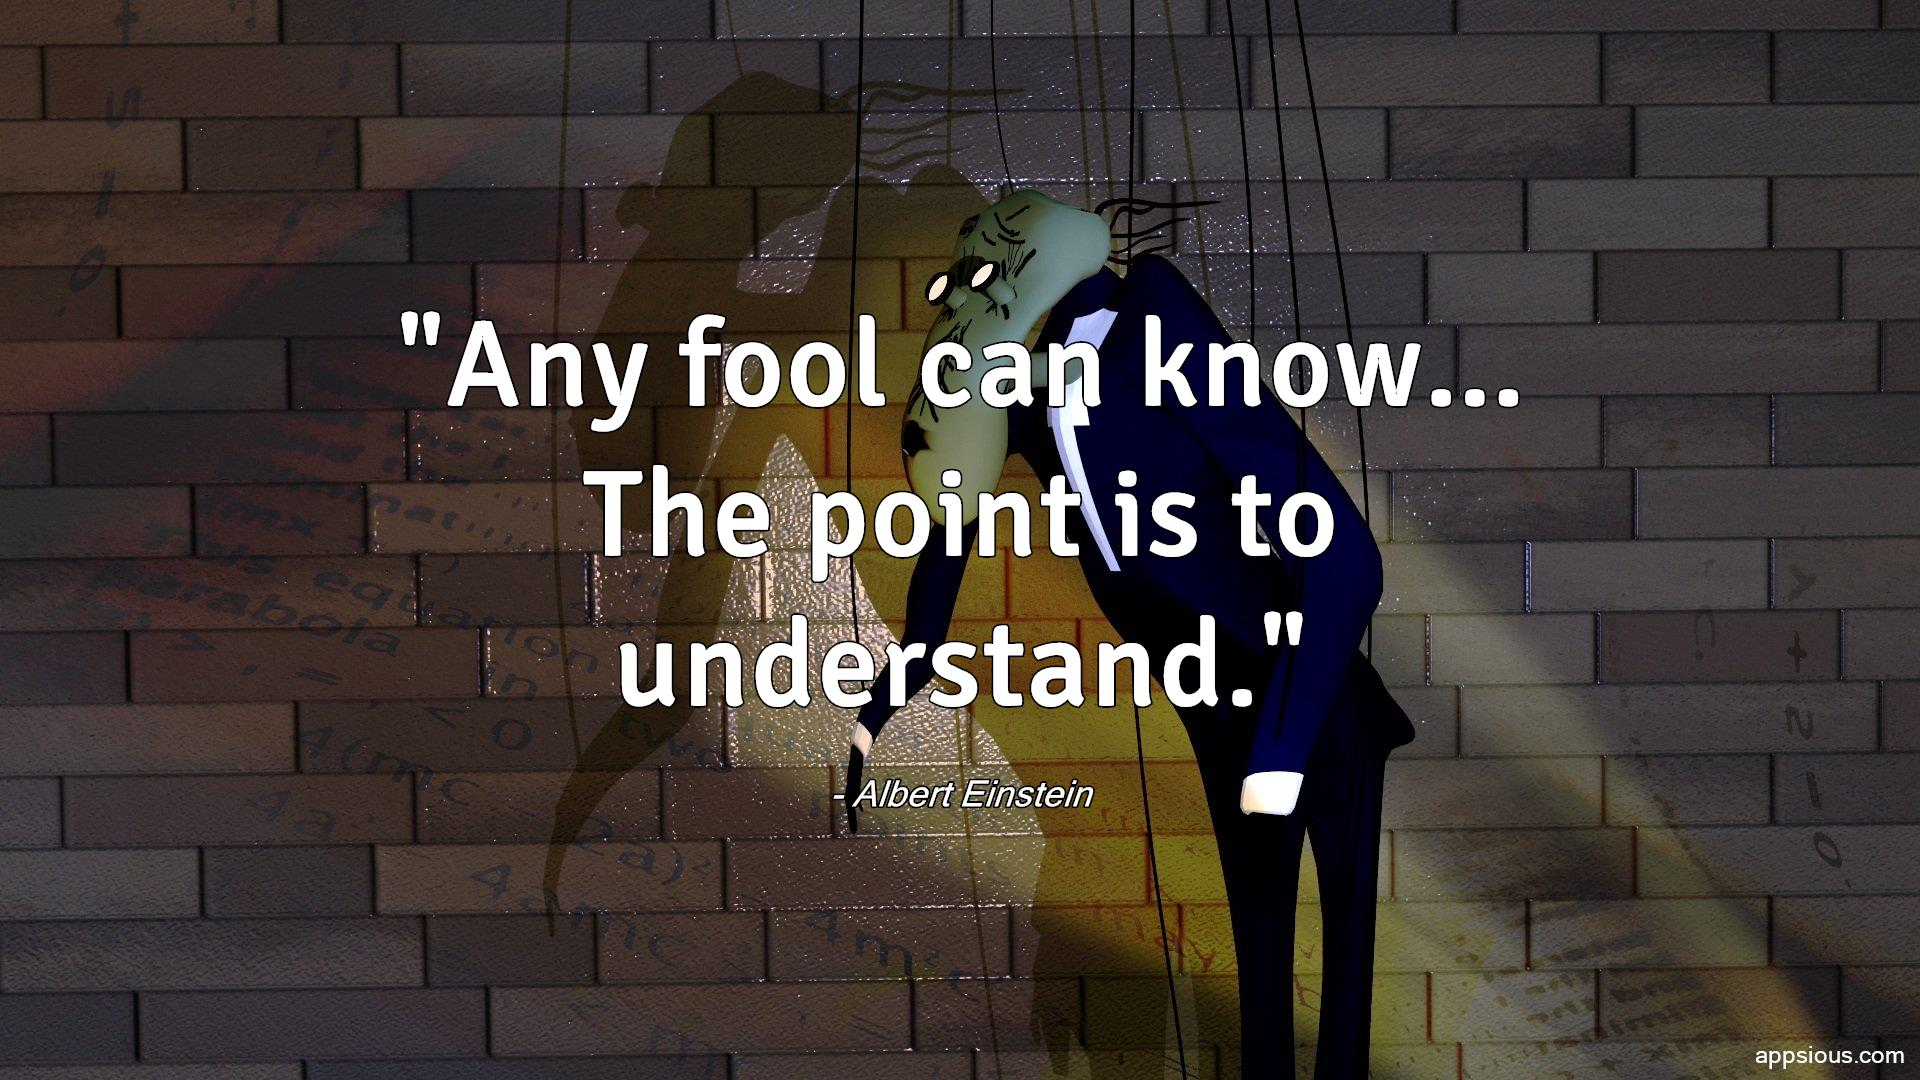 Any fool can know... The point is to understand.